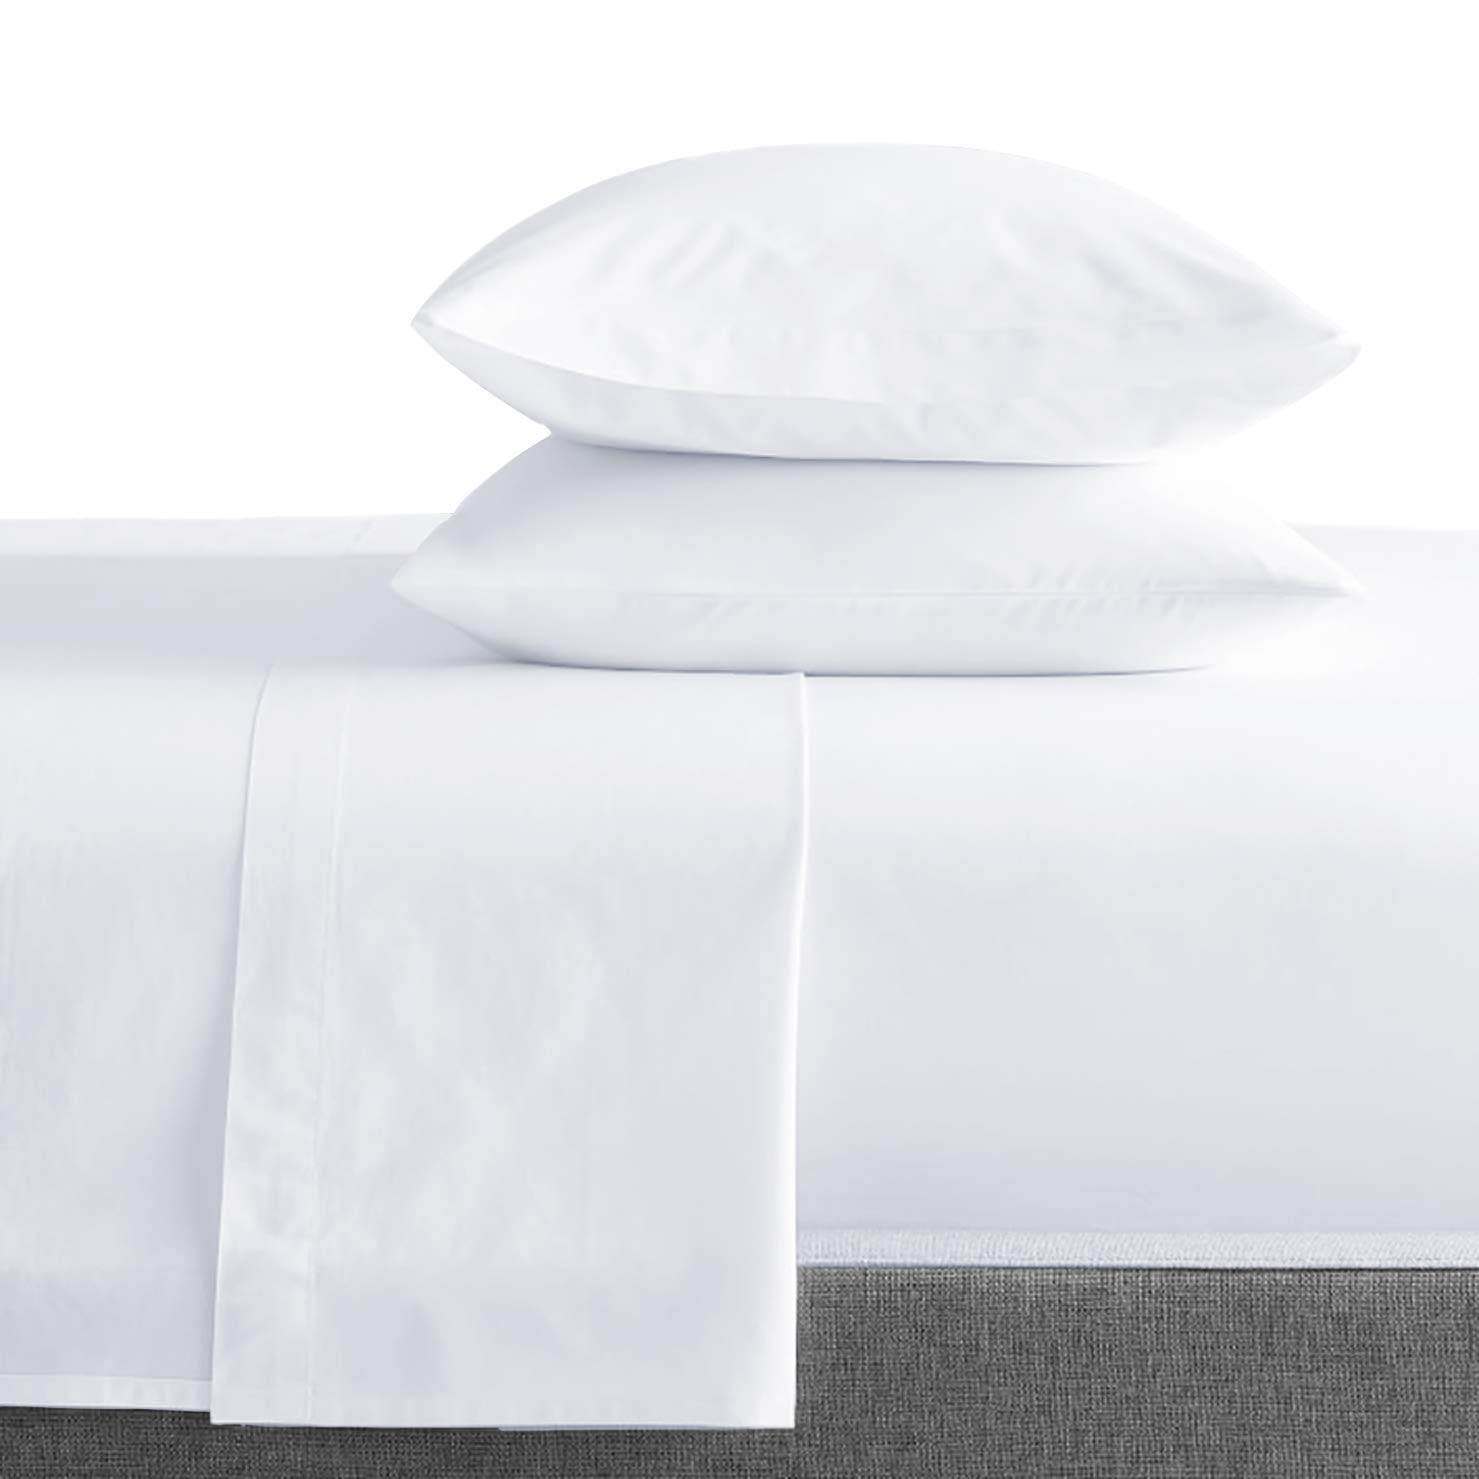 Bokser Home 500 Thread Count 100% Long Staple Cotton Sateen Bed Sheets   Size: Full - White   Luxurious, Ultra Soft, and Smooth 4 Piece Set   Extra Deep Pockets to Fit Any Mattress